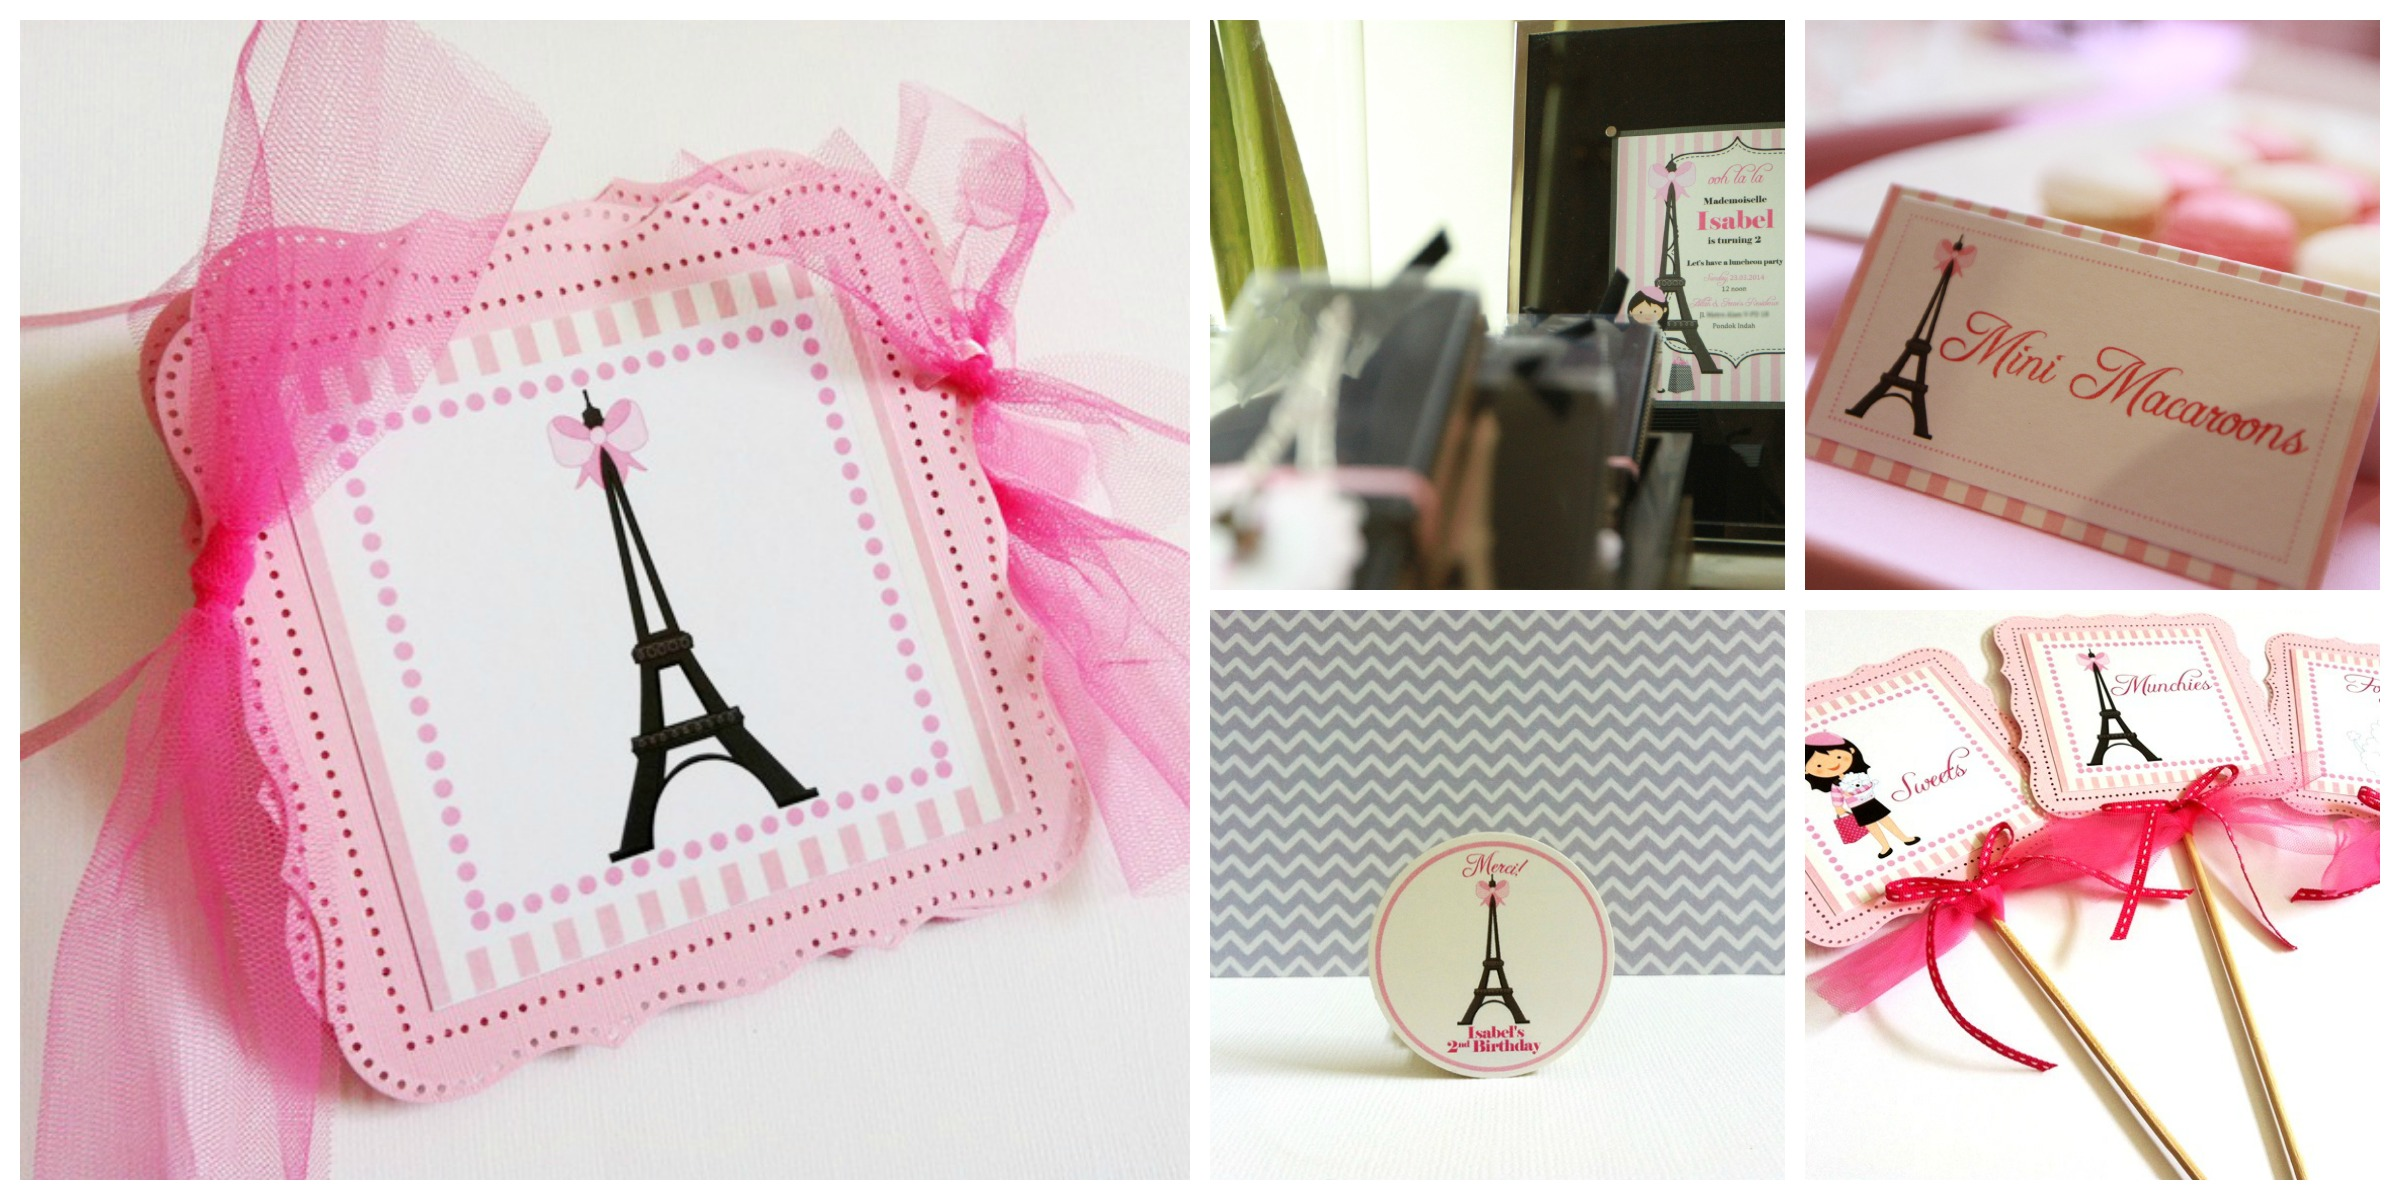 Eiffel Tower Centerpieces for Sale | Wedding Eiffel Tower Centerpieces | Eiffel Tower Centerpieces